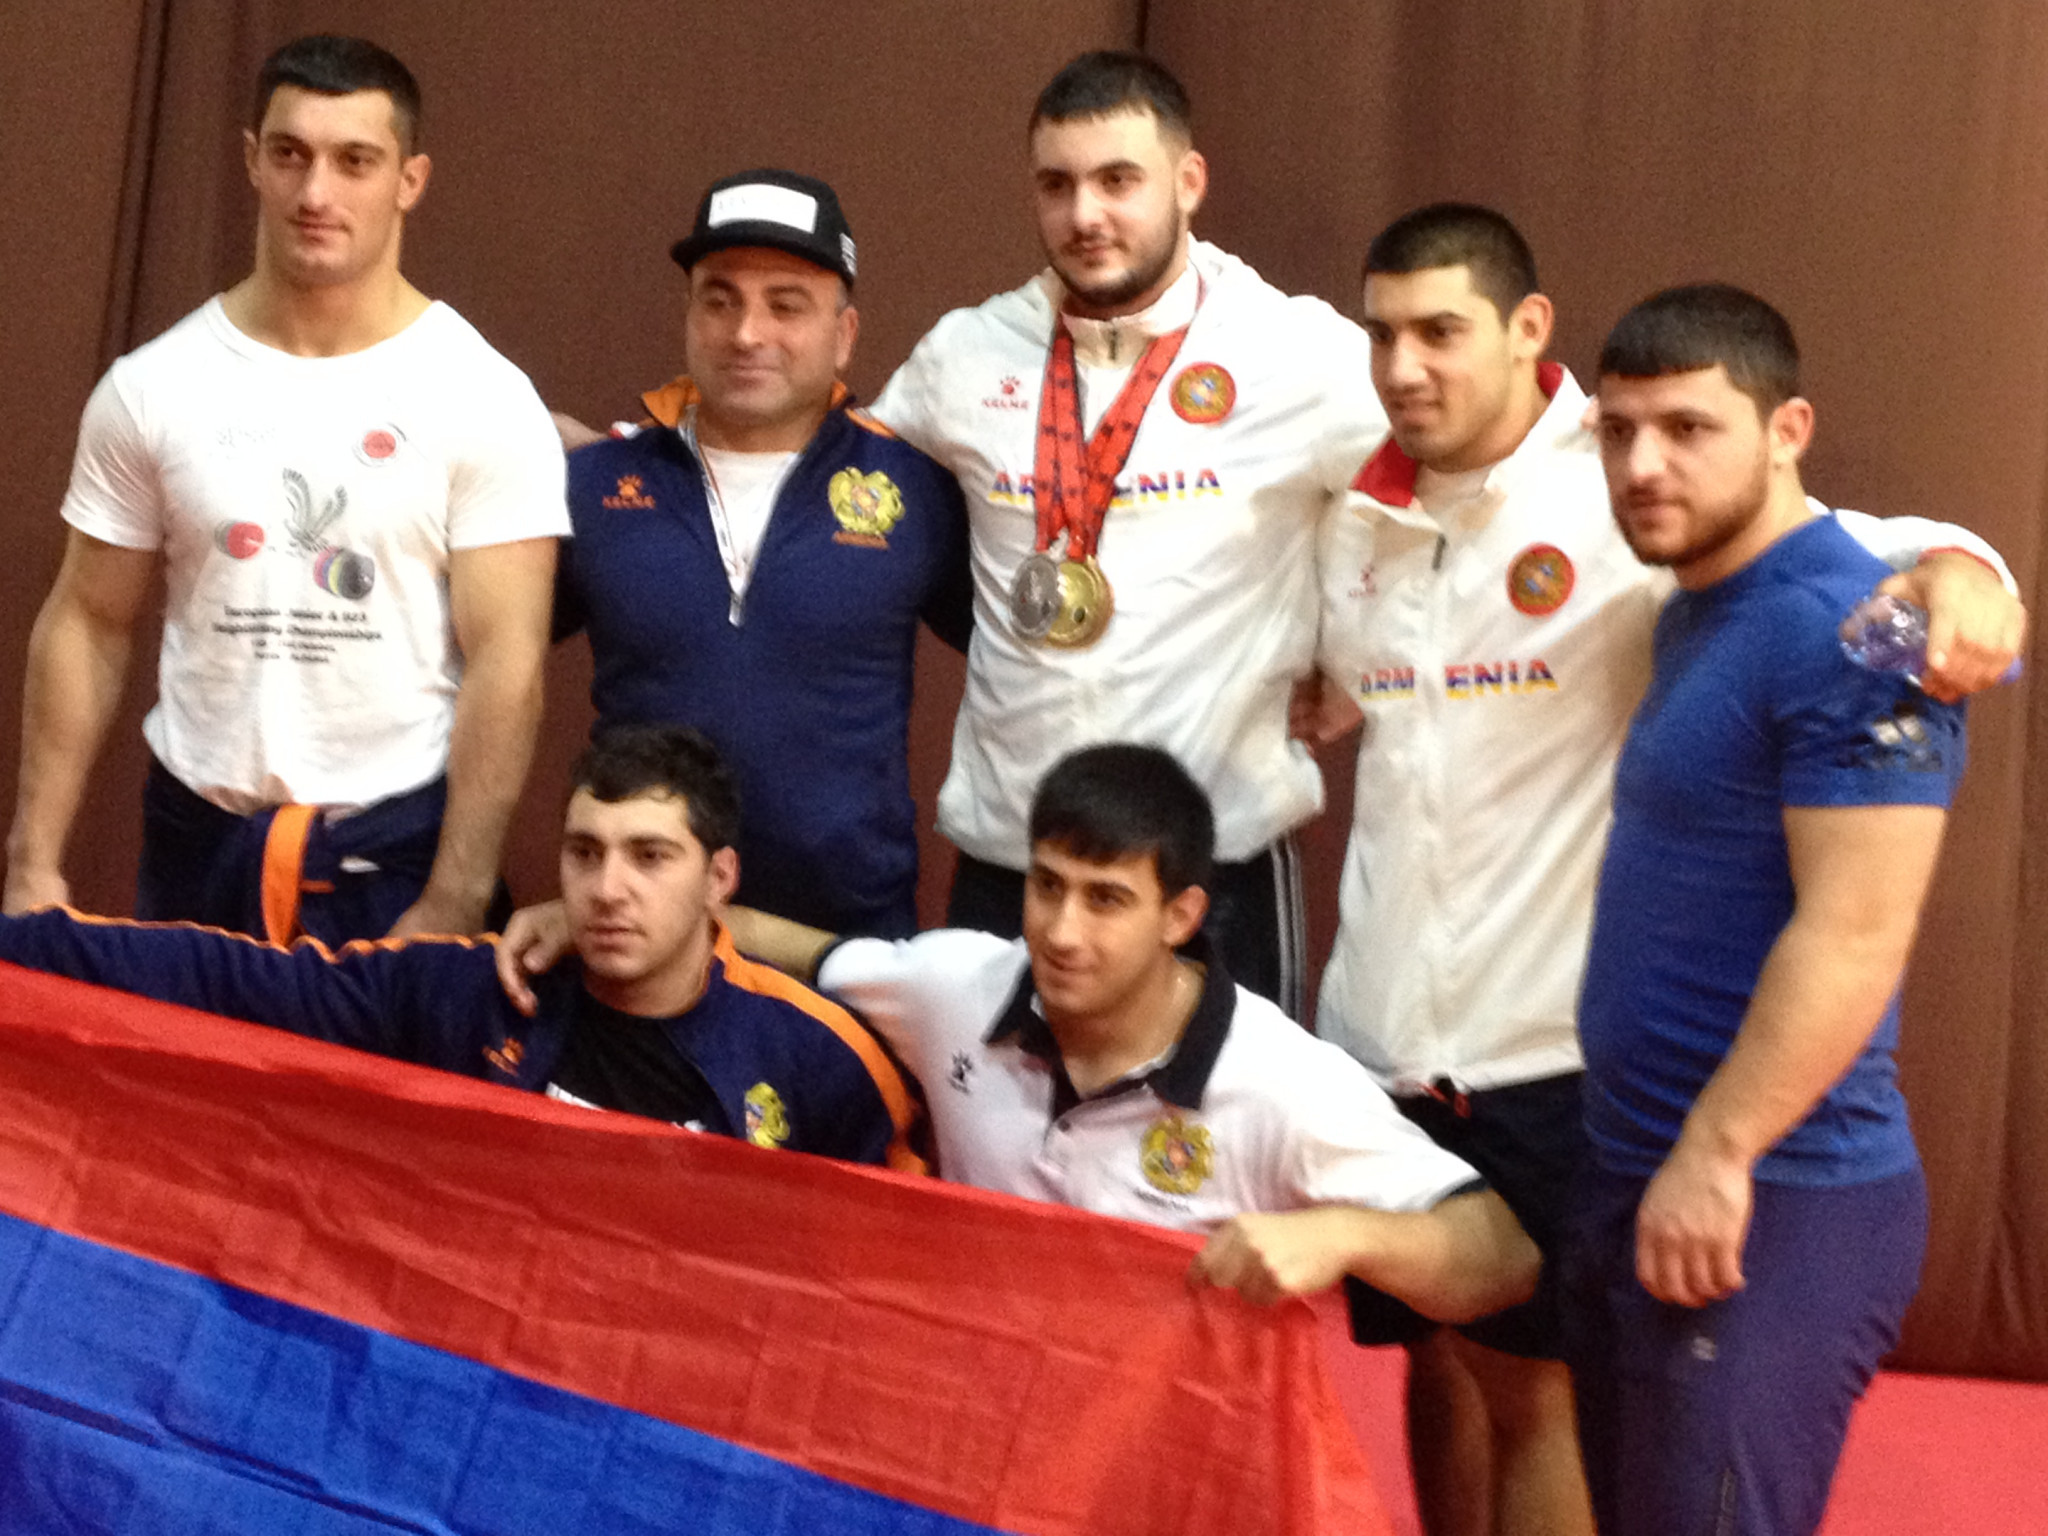 Armenia's Simon Martirosyan, who won a silver medal at Rio 2016, and his compatriot Gor Minasyan were among their country's three medallists at Durres today ©ITG